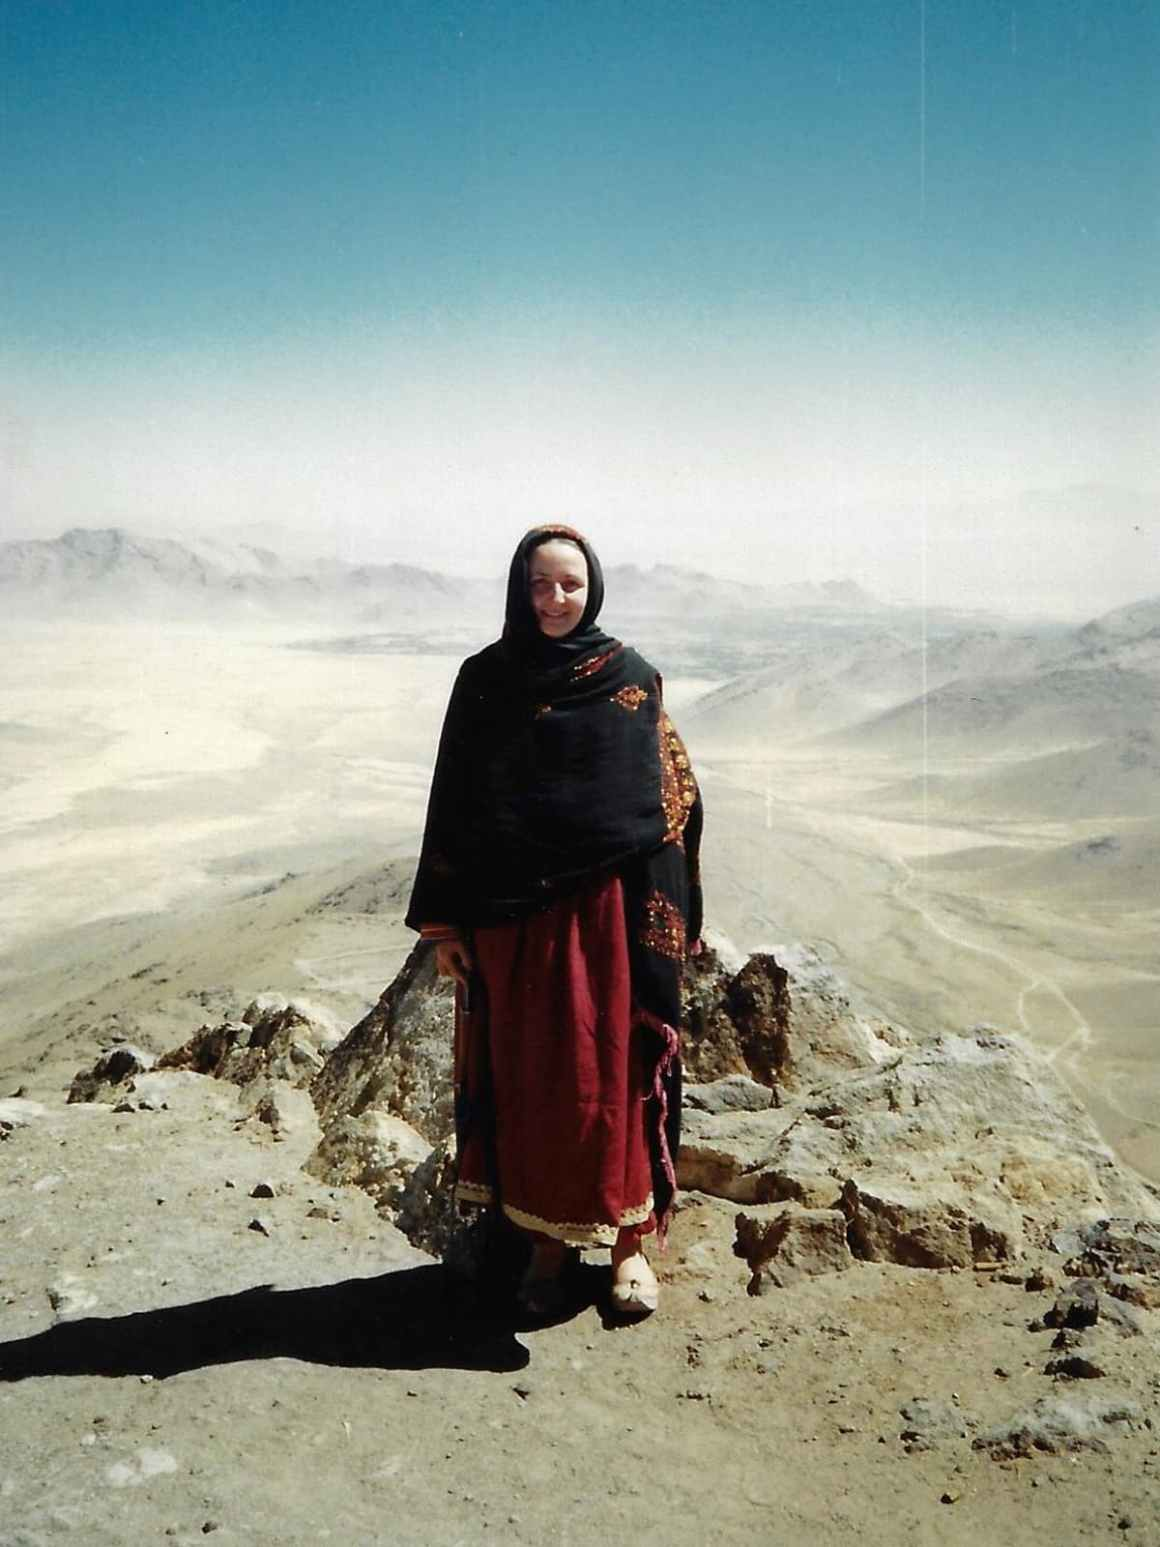 Mariam Abou Zahab in southern Afghanistan during the mid-1980s. Credit: Laurent Gayer